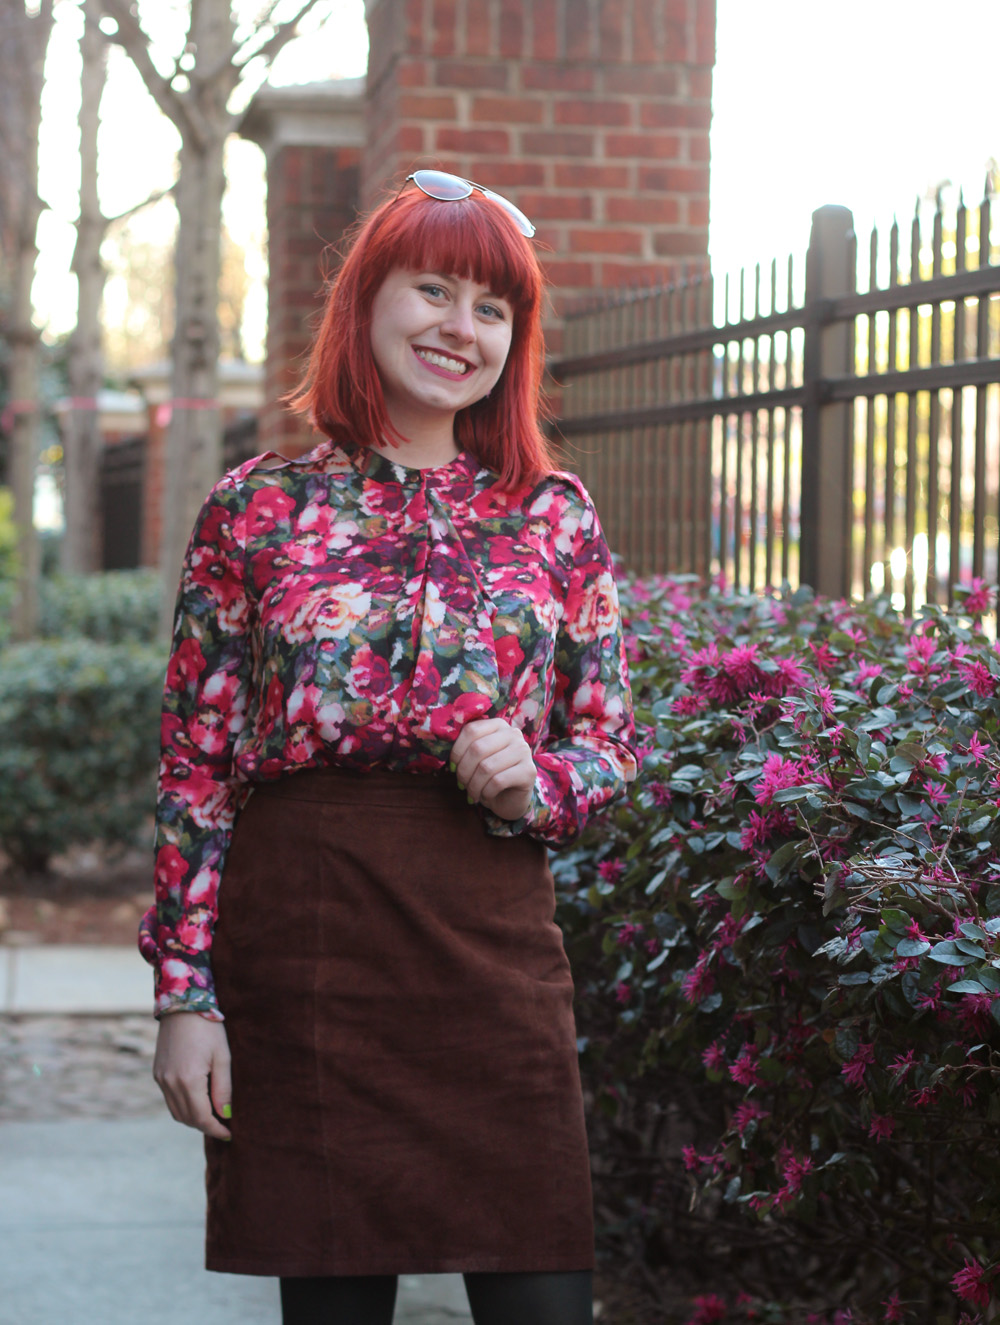 Ruffled Floral Long Sleeved Blouse, Bright Red Hair, and a Brown Suede Pencil Skirt